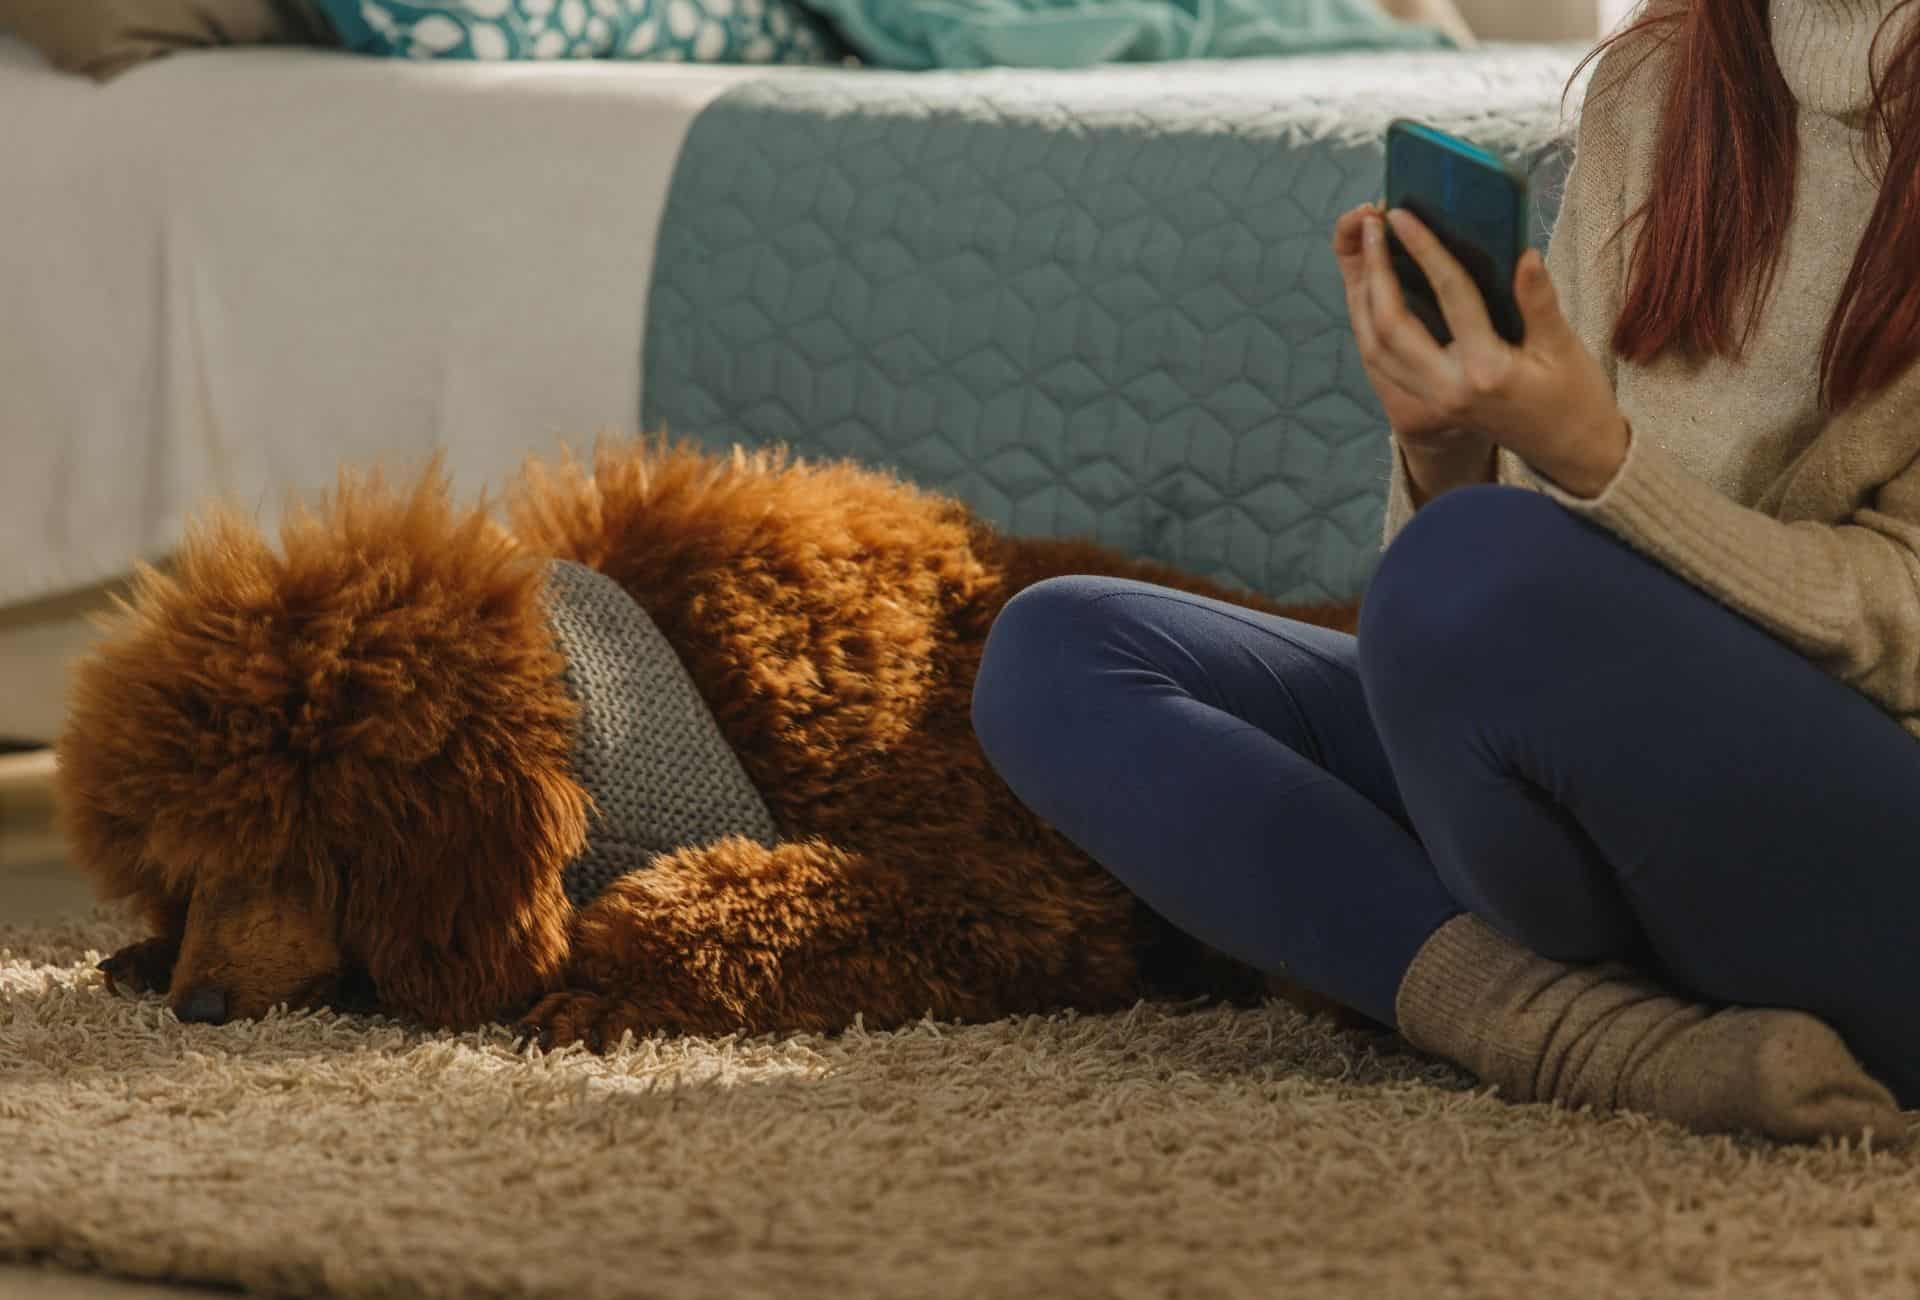 Dog sleeps on the carpet next to a woman while touching her.